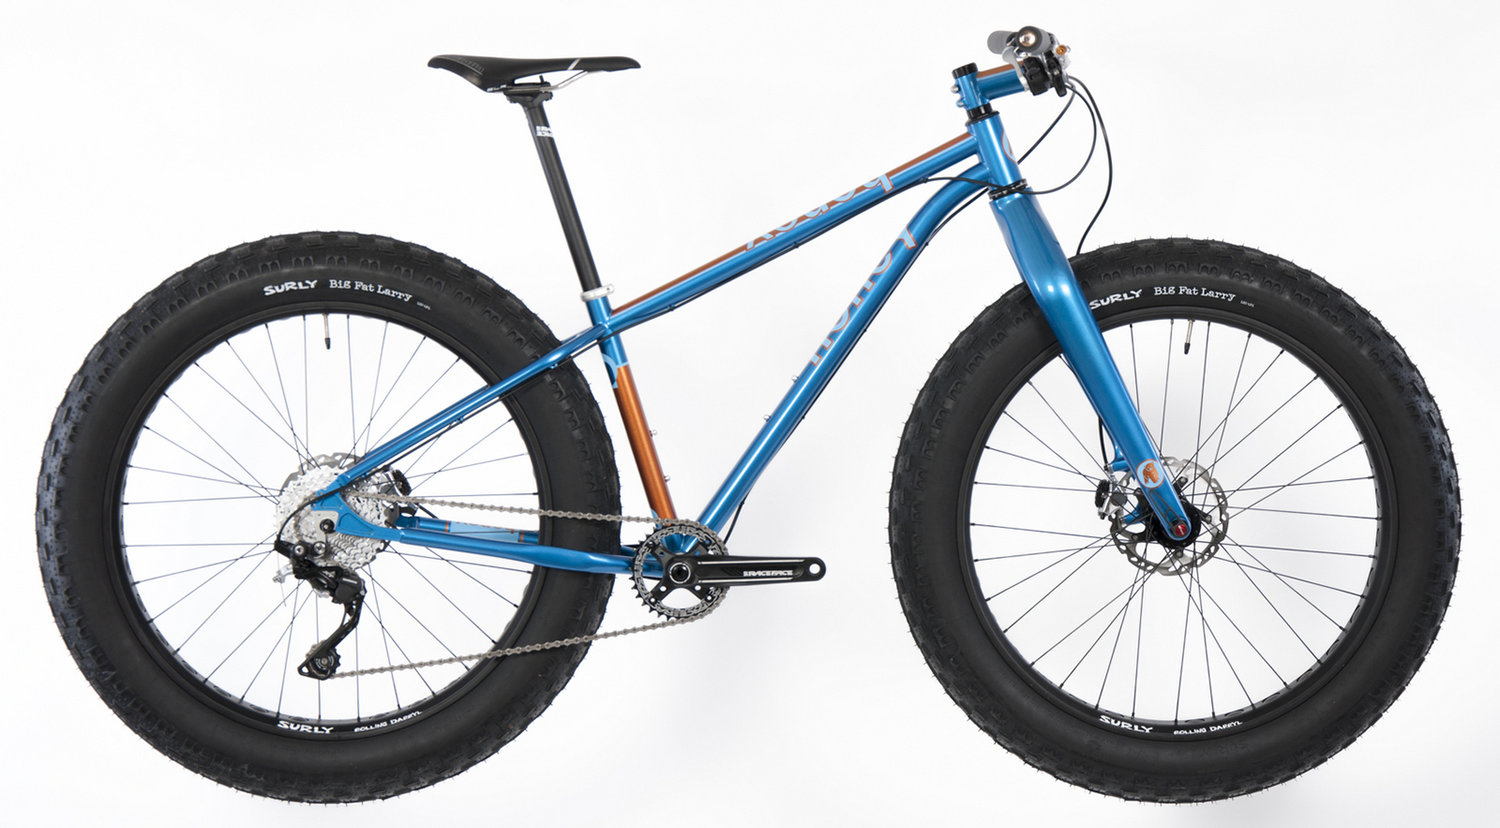 Honey's OffTrail fat bike is a lightweight steel bike that offers a well-constructed frame and the gearing and contact points of your choosing.